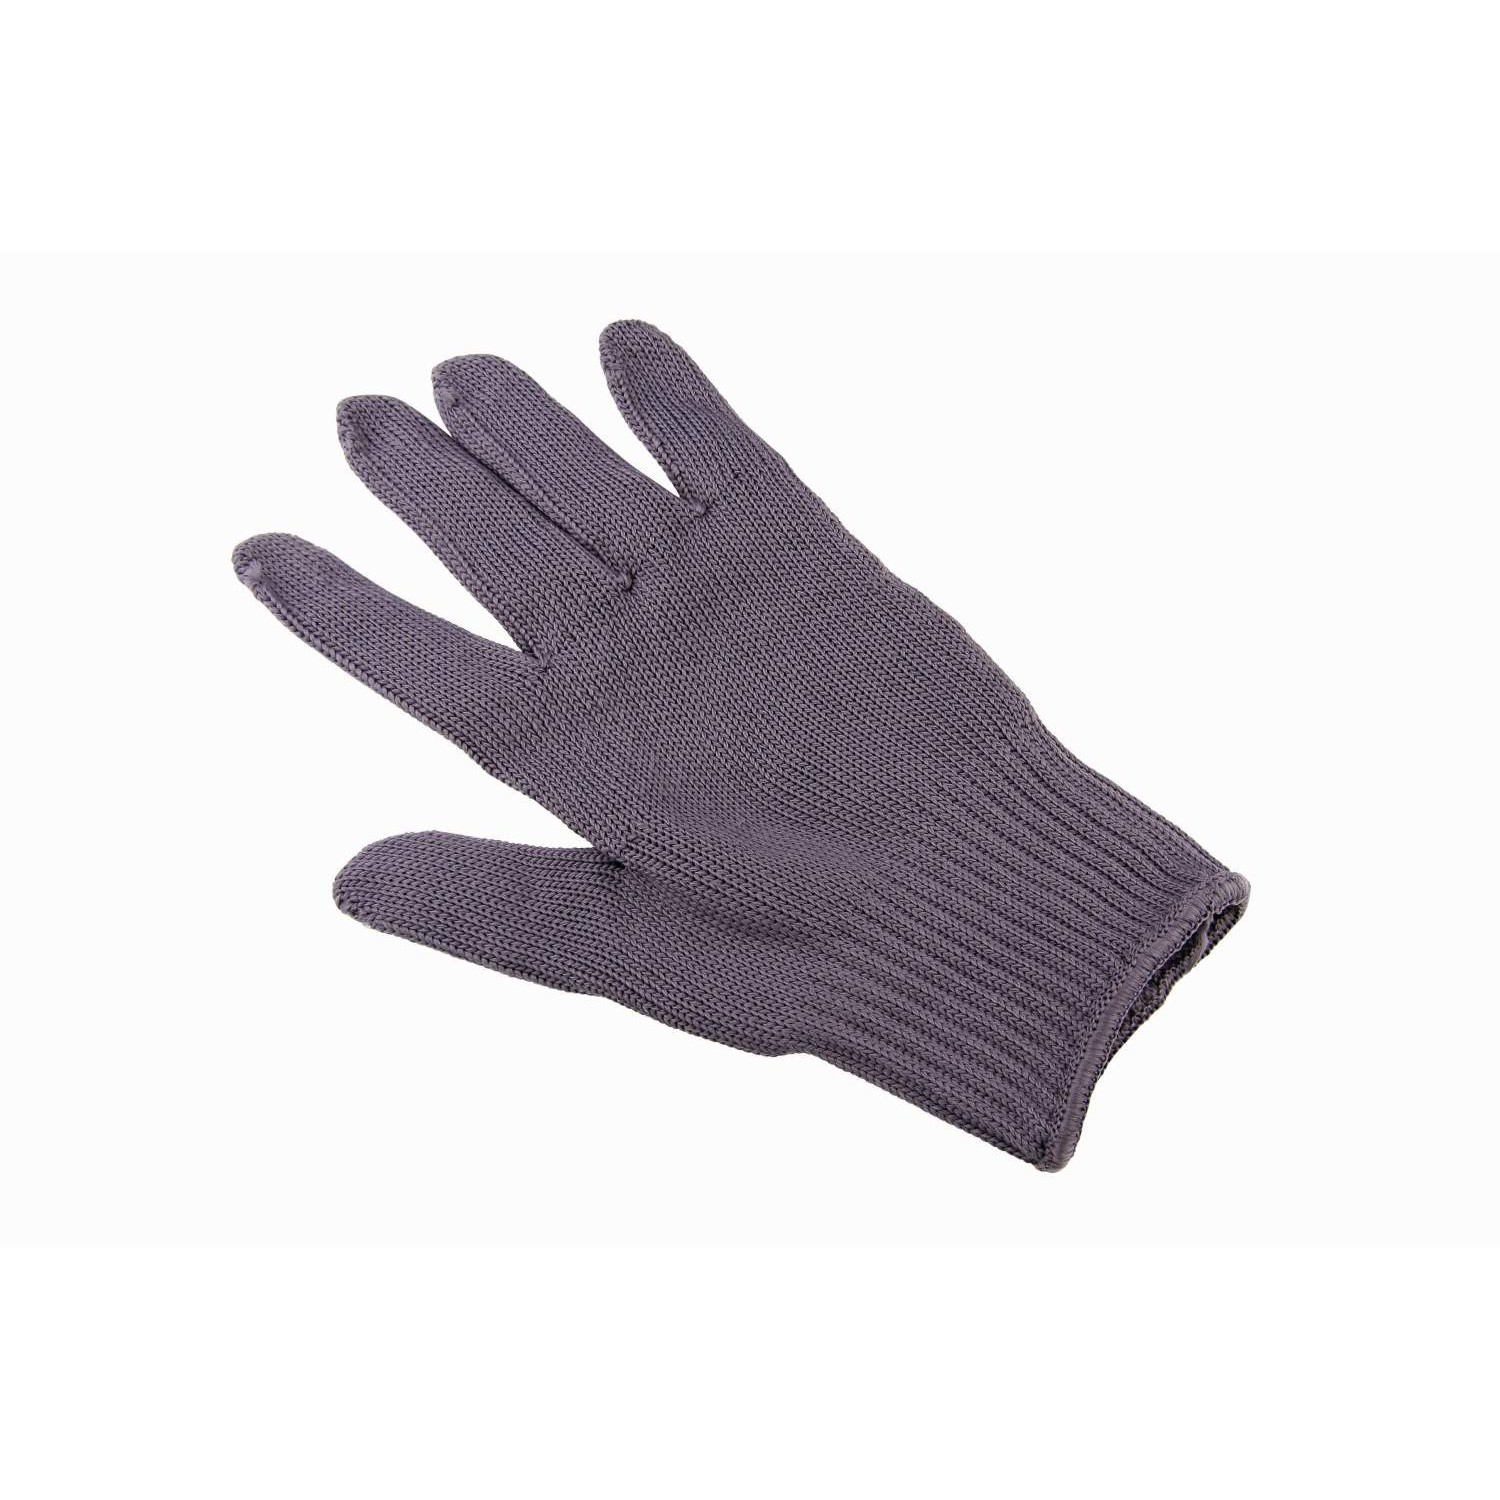 DAM MAD Cat Kevlar Protection Glove Grey